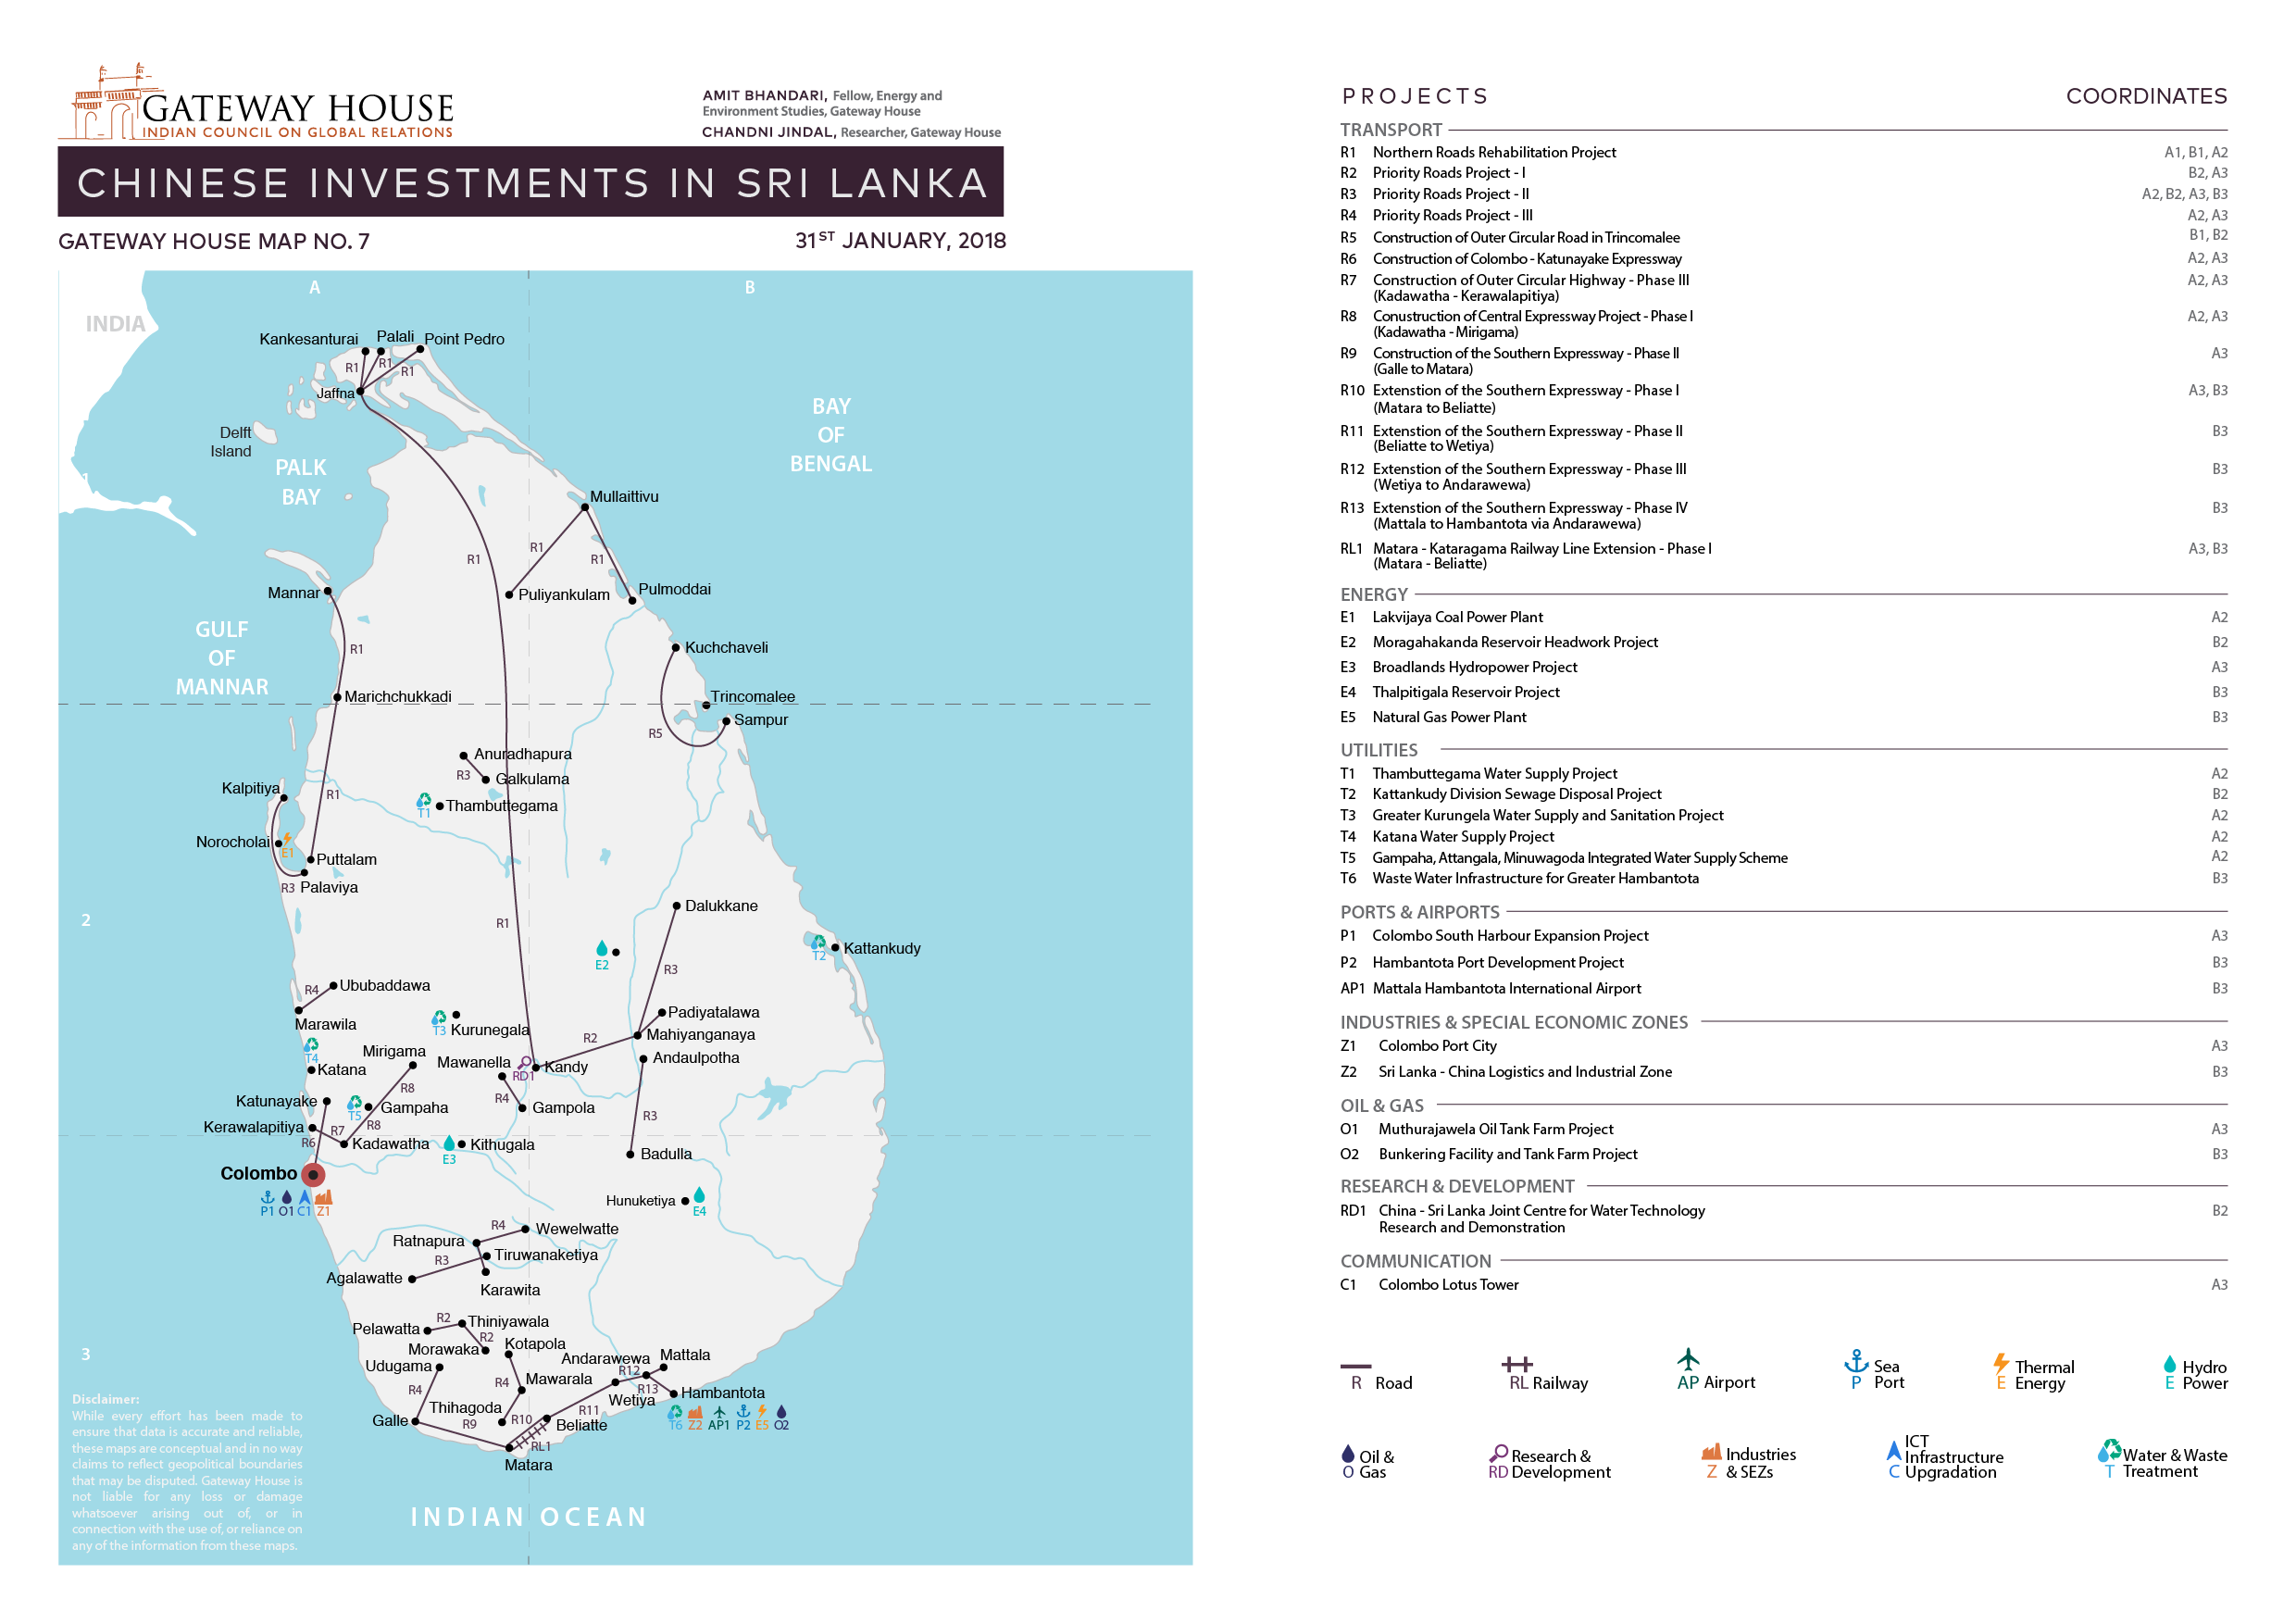 Gateway House's research map on Chinese investments in Sri Lanka. Researched by Amit Bhandari and Chandni Jindal.